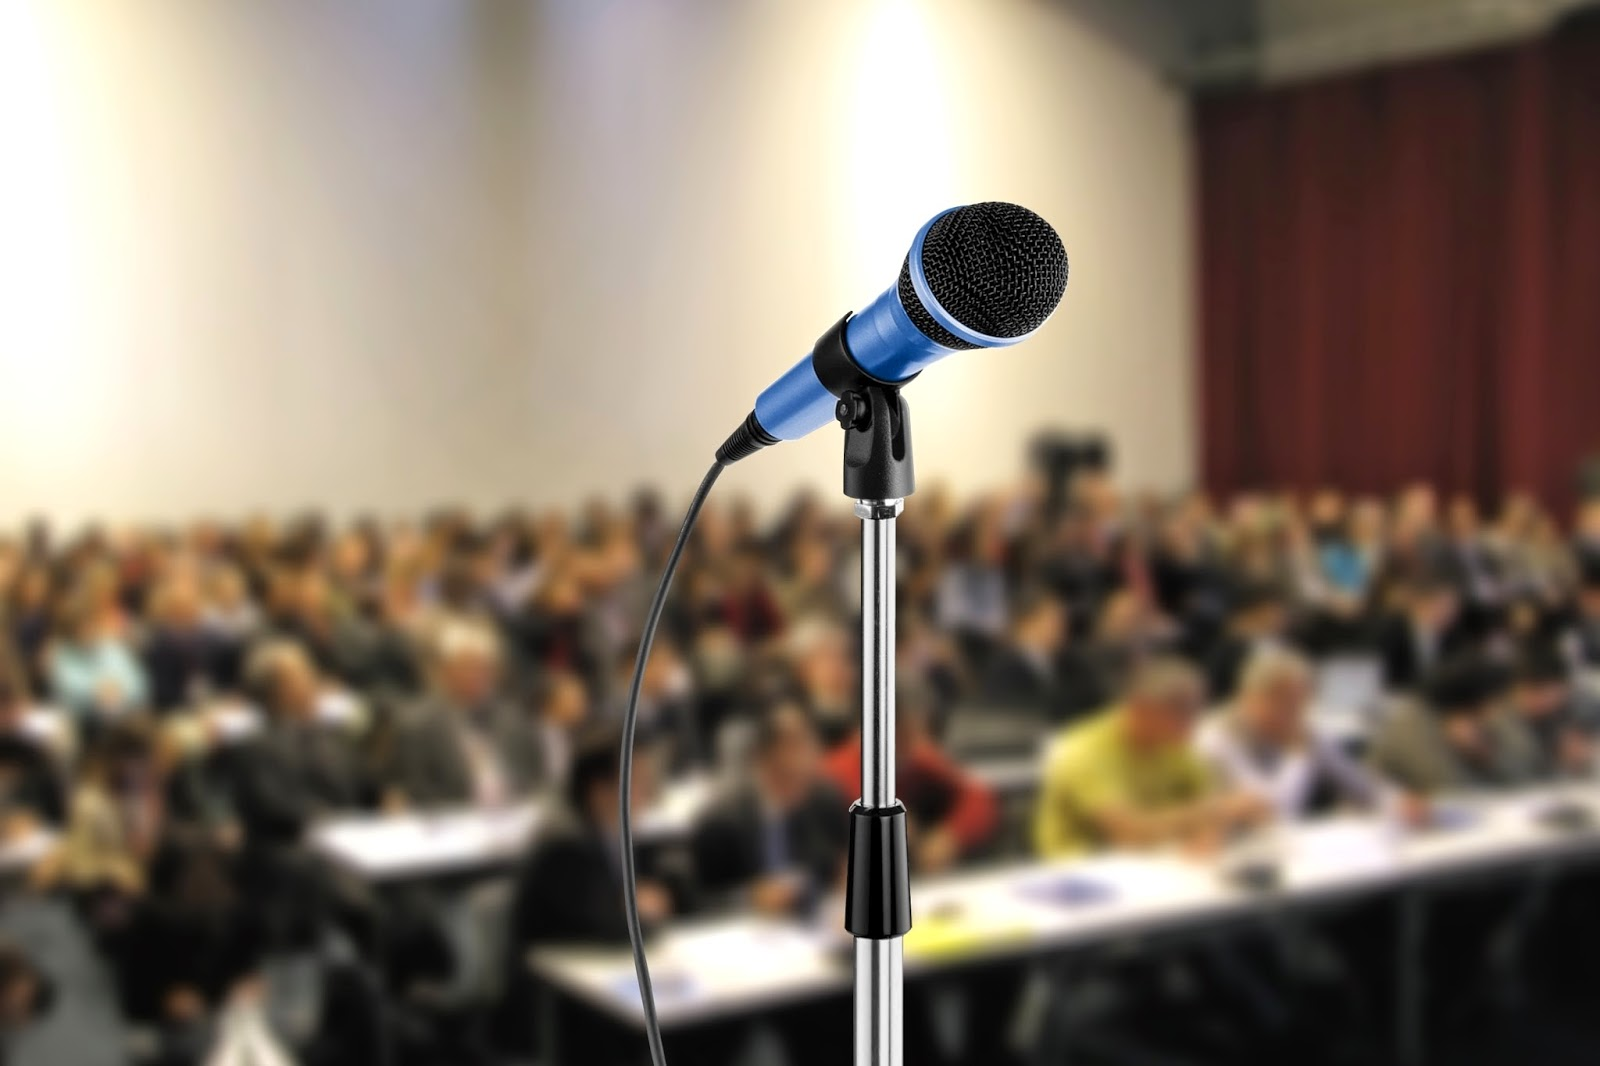 Microphone-In-Conference-Image